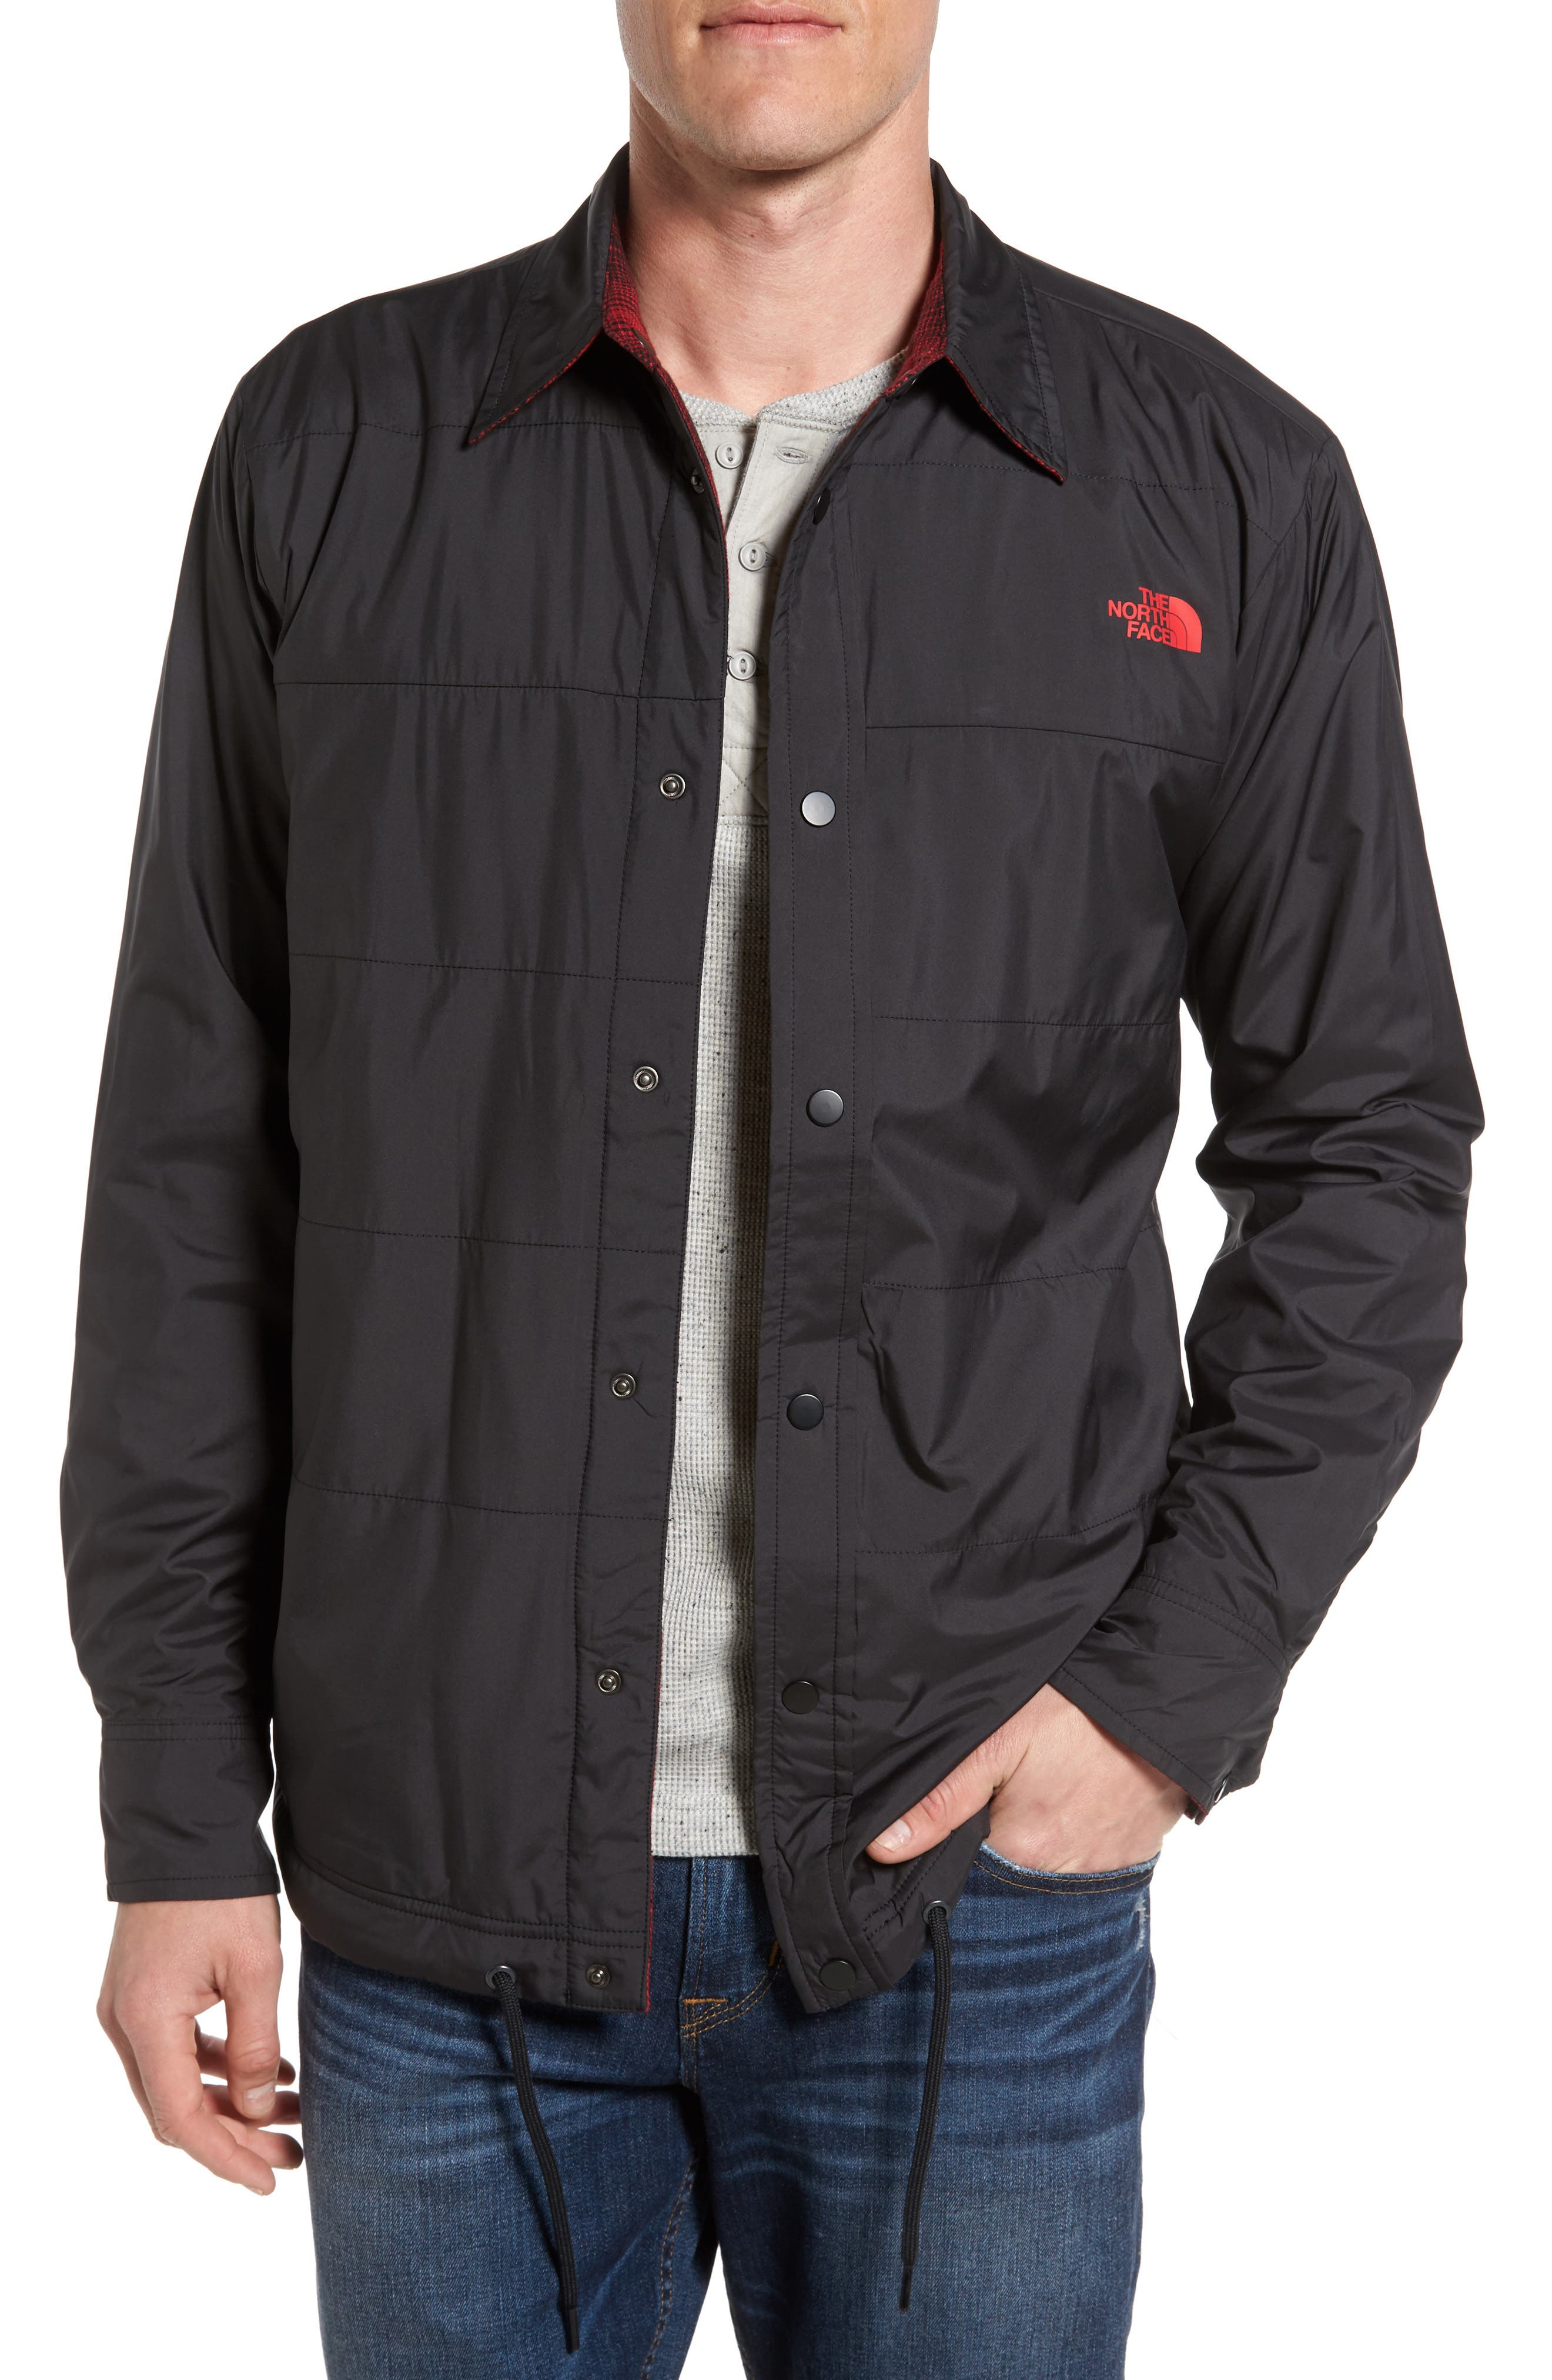 The North Face 'Fort Point' Reversible Water Repellent Jacket